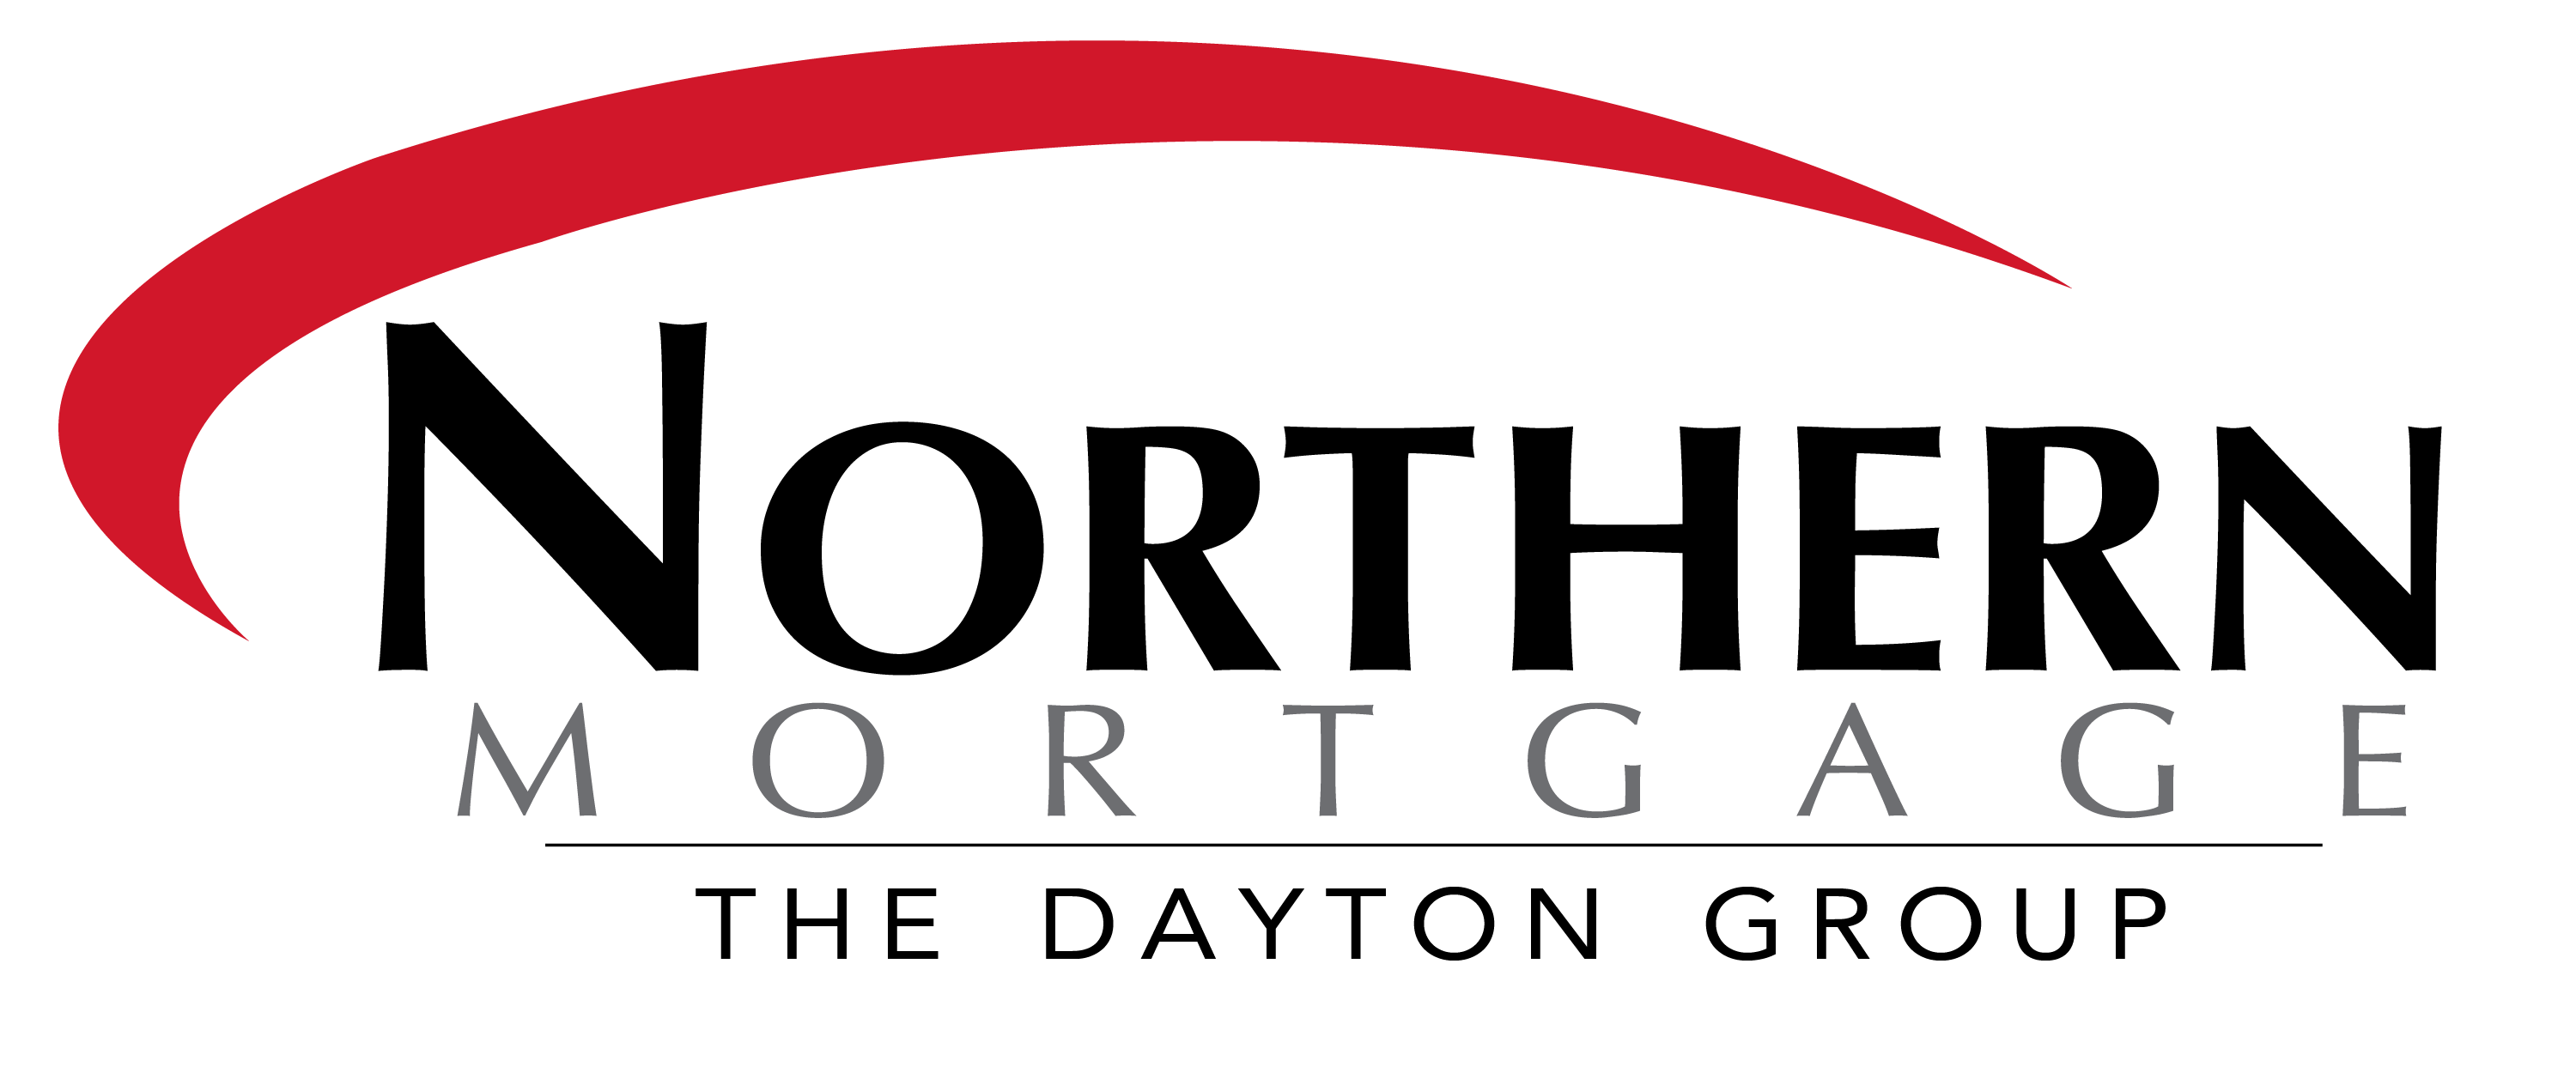 Northern Mortgage Services - Dayton